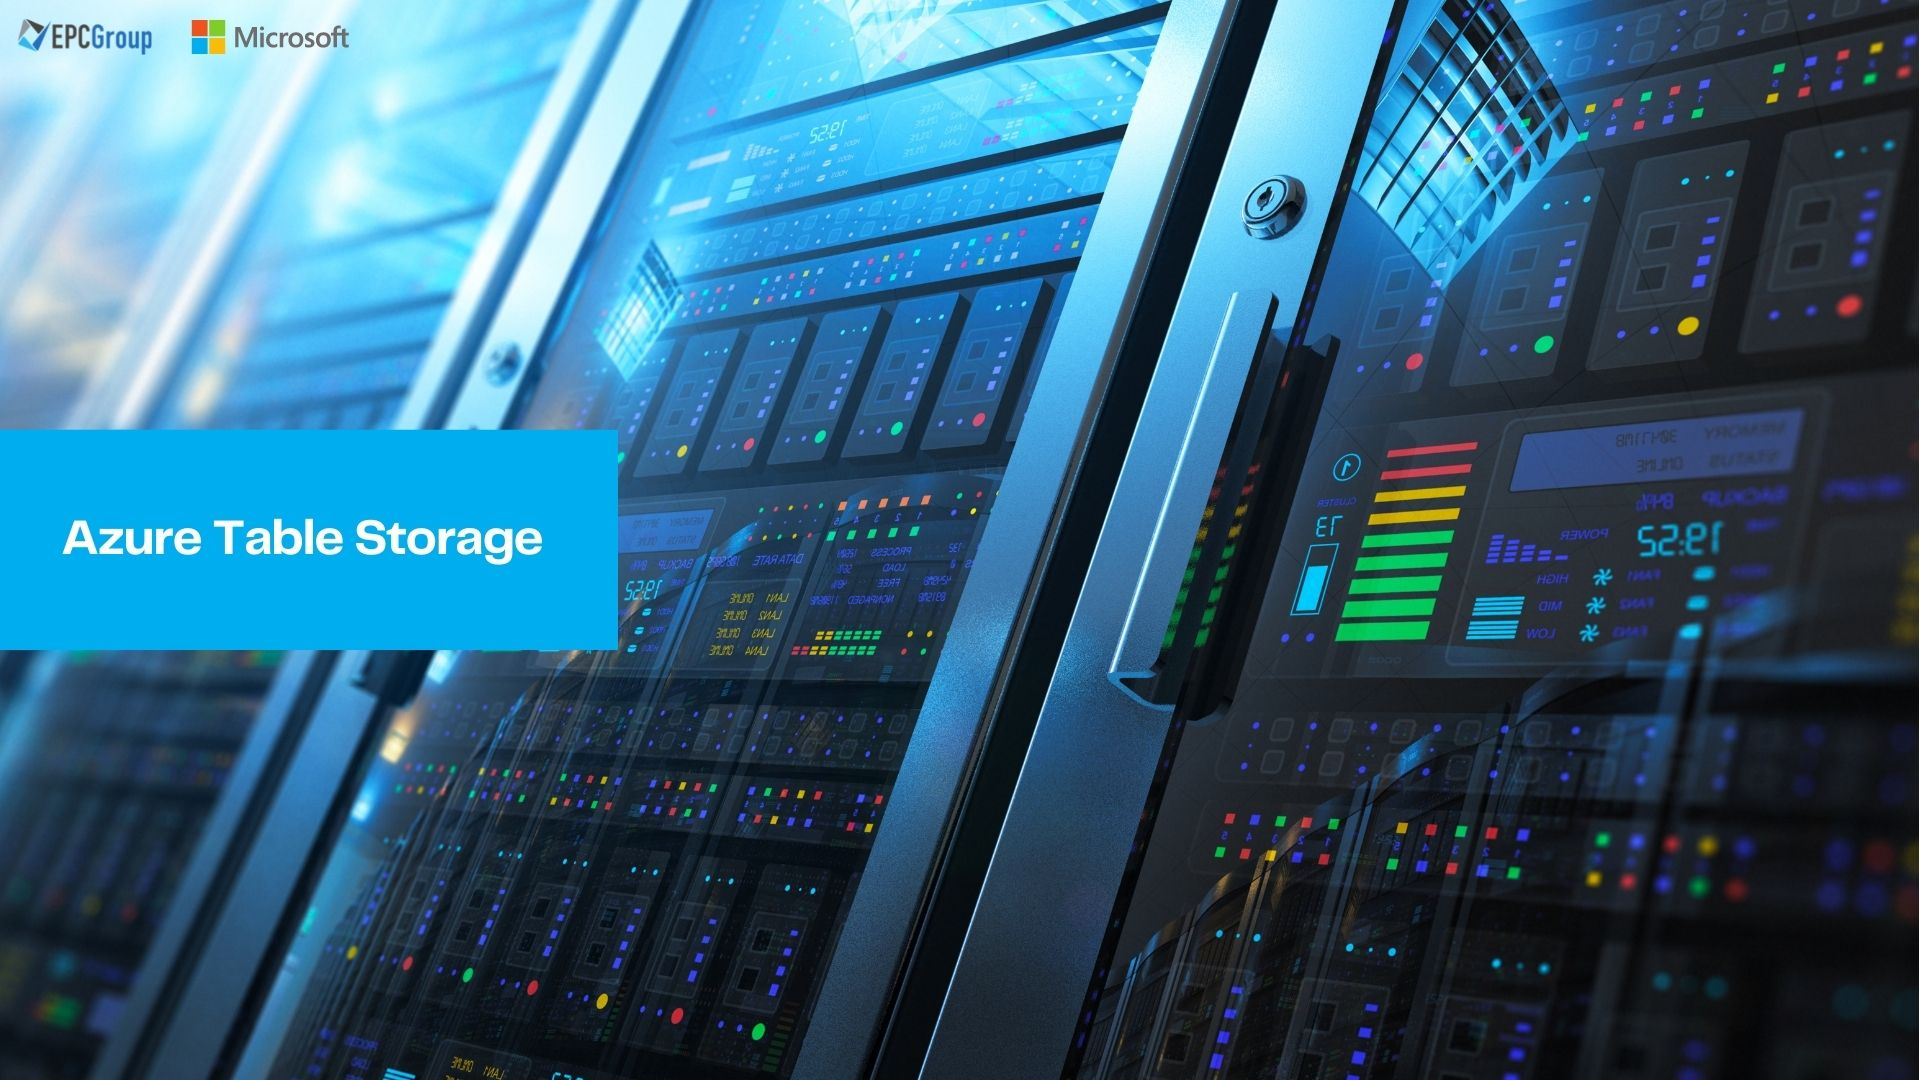 Microsoft Azure Table Storage: Storage For Unstructured & Semi-Structured Data - thumb image